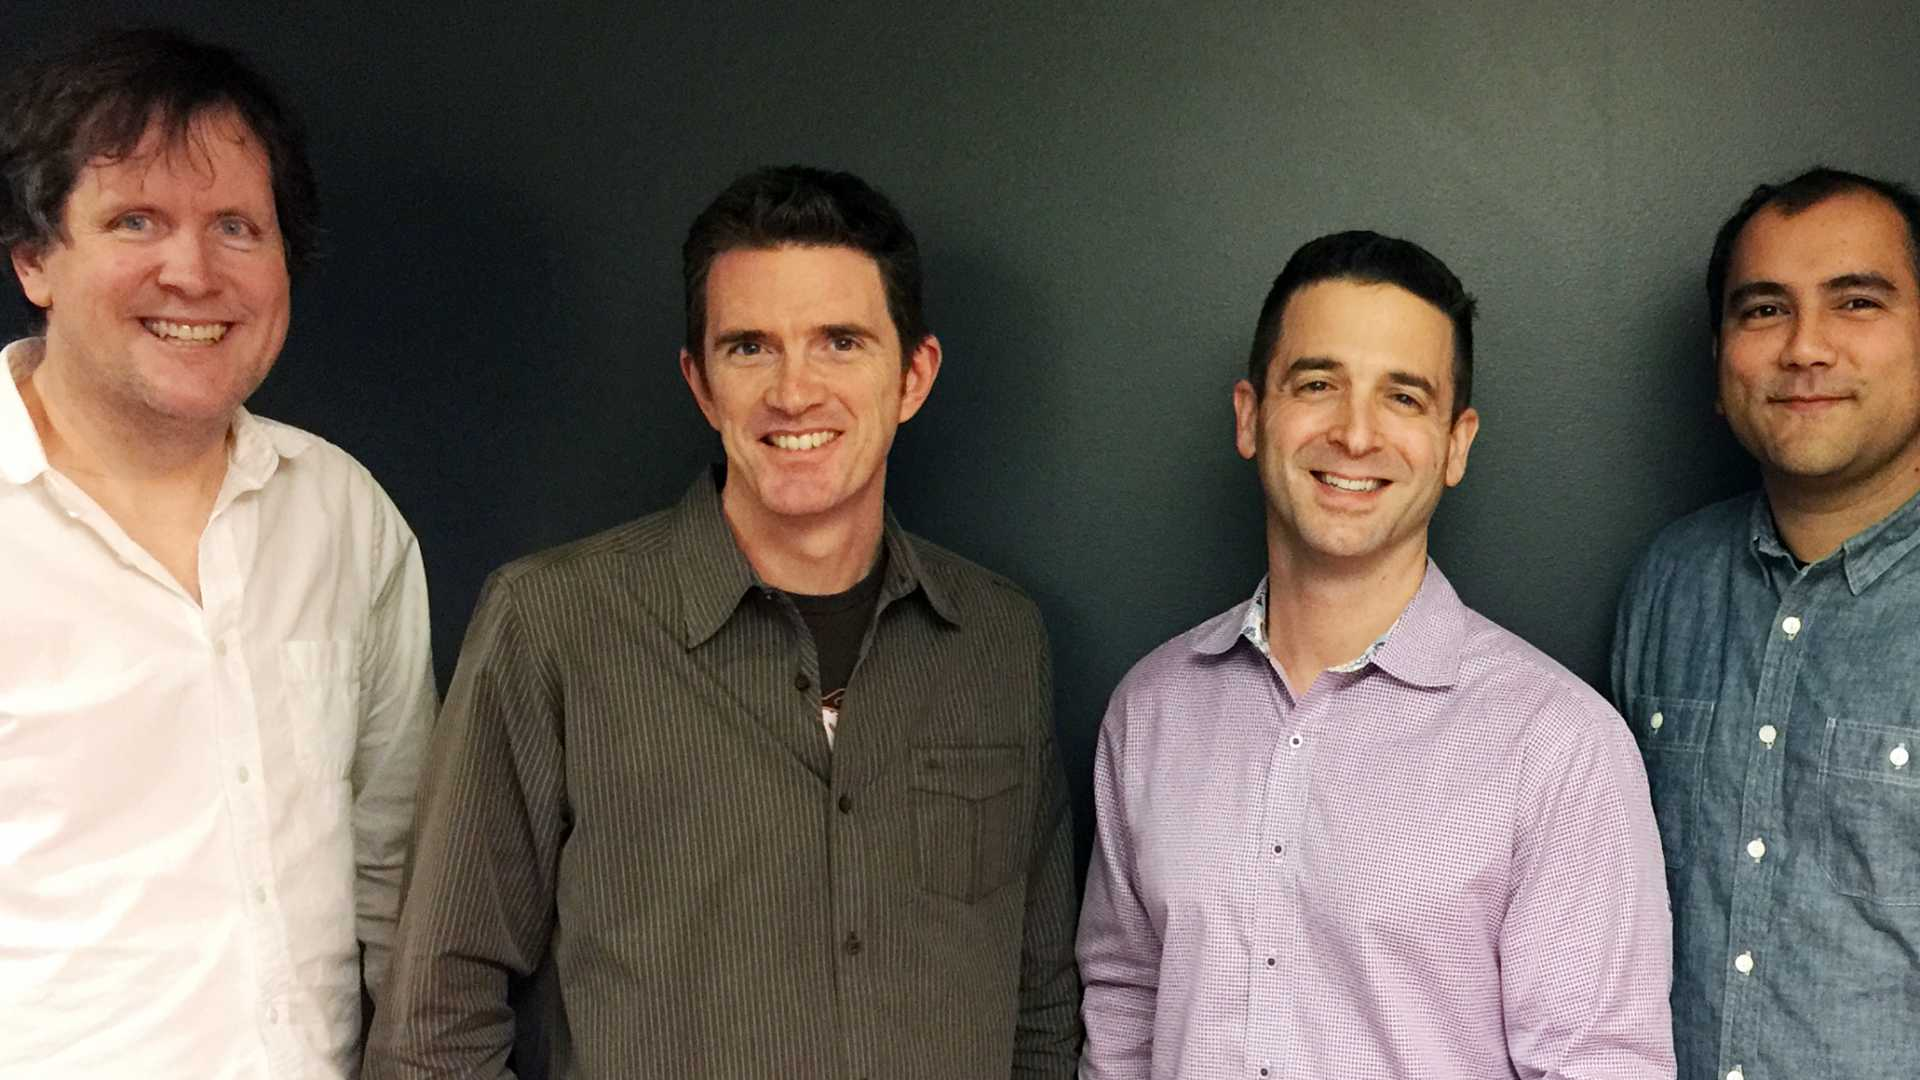 MightyAI co-founders (L-R) Patrick O'Donnell, Matt Shobe, Matt Bencke and Daryn Nakhuda.